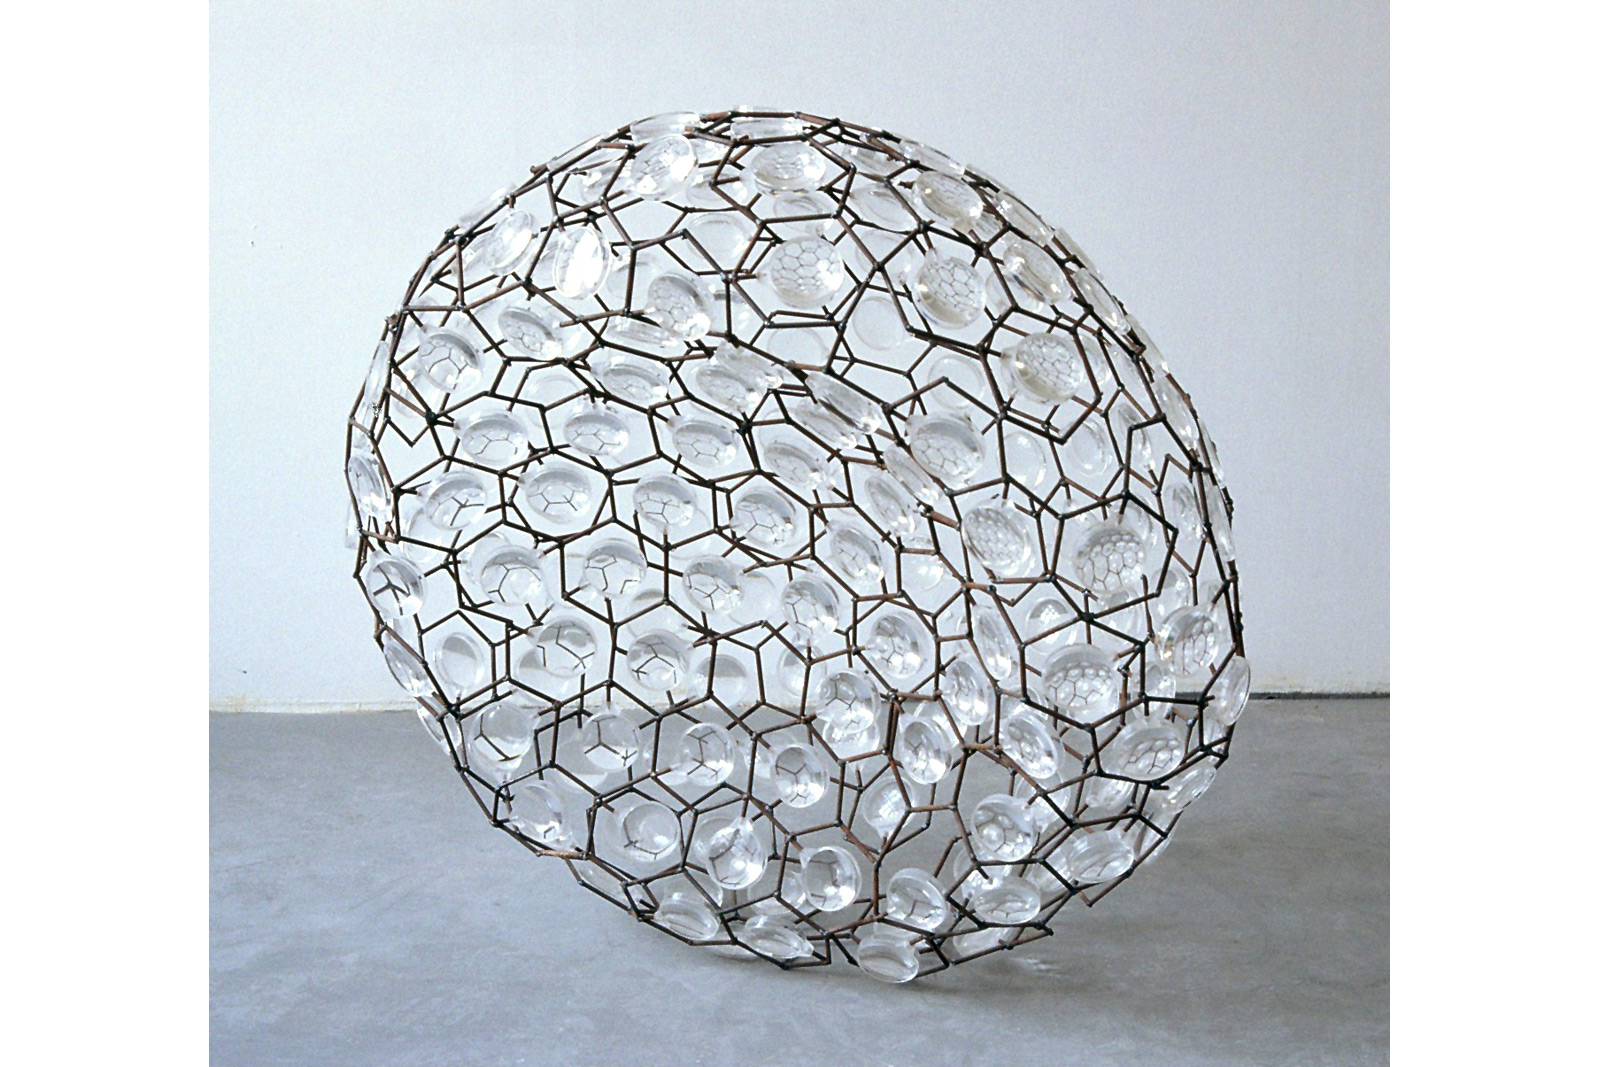 steelsculpture, magnifying glas